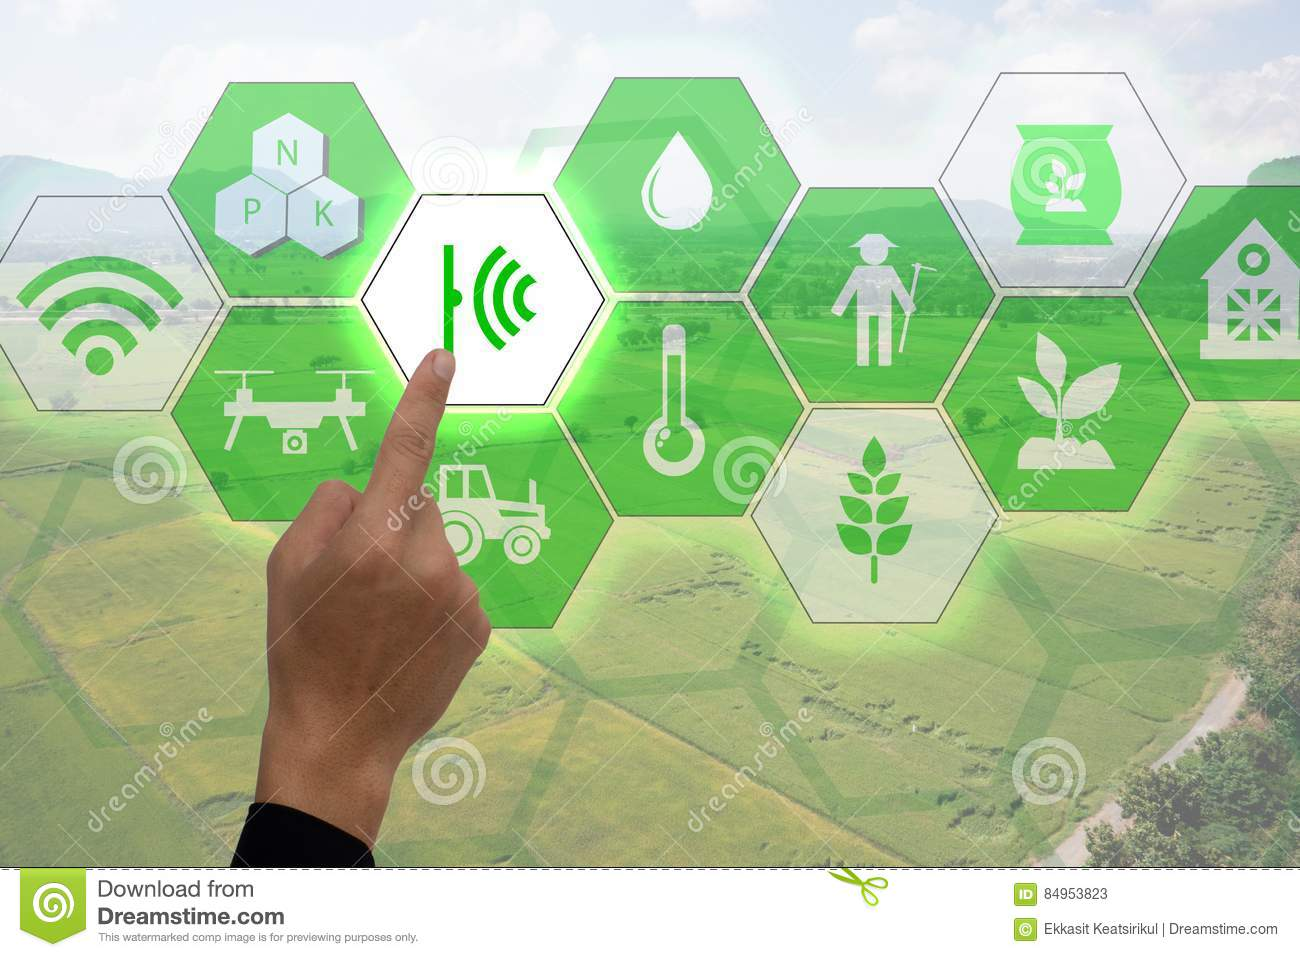 Internet of thingsagriculture concept, smart farming, industrial agriculture. Farmer point hand to use augmented reality technolog